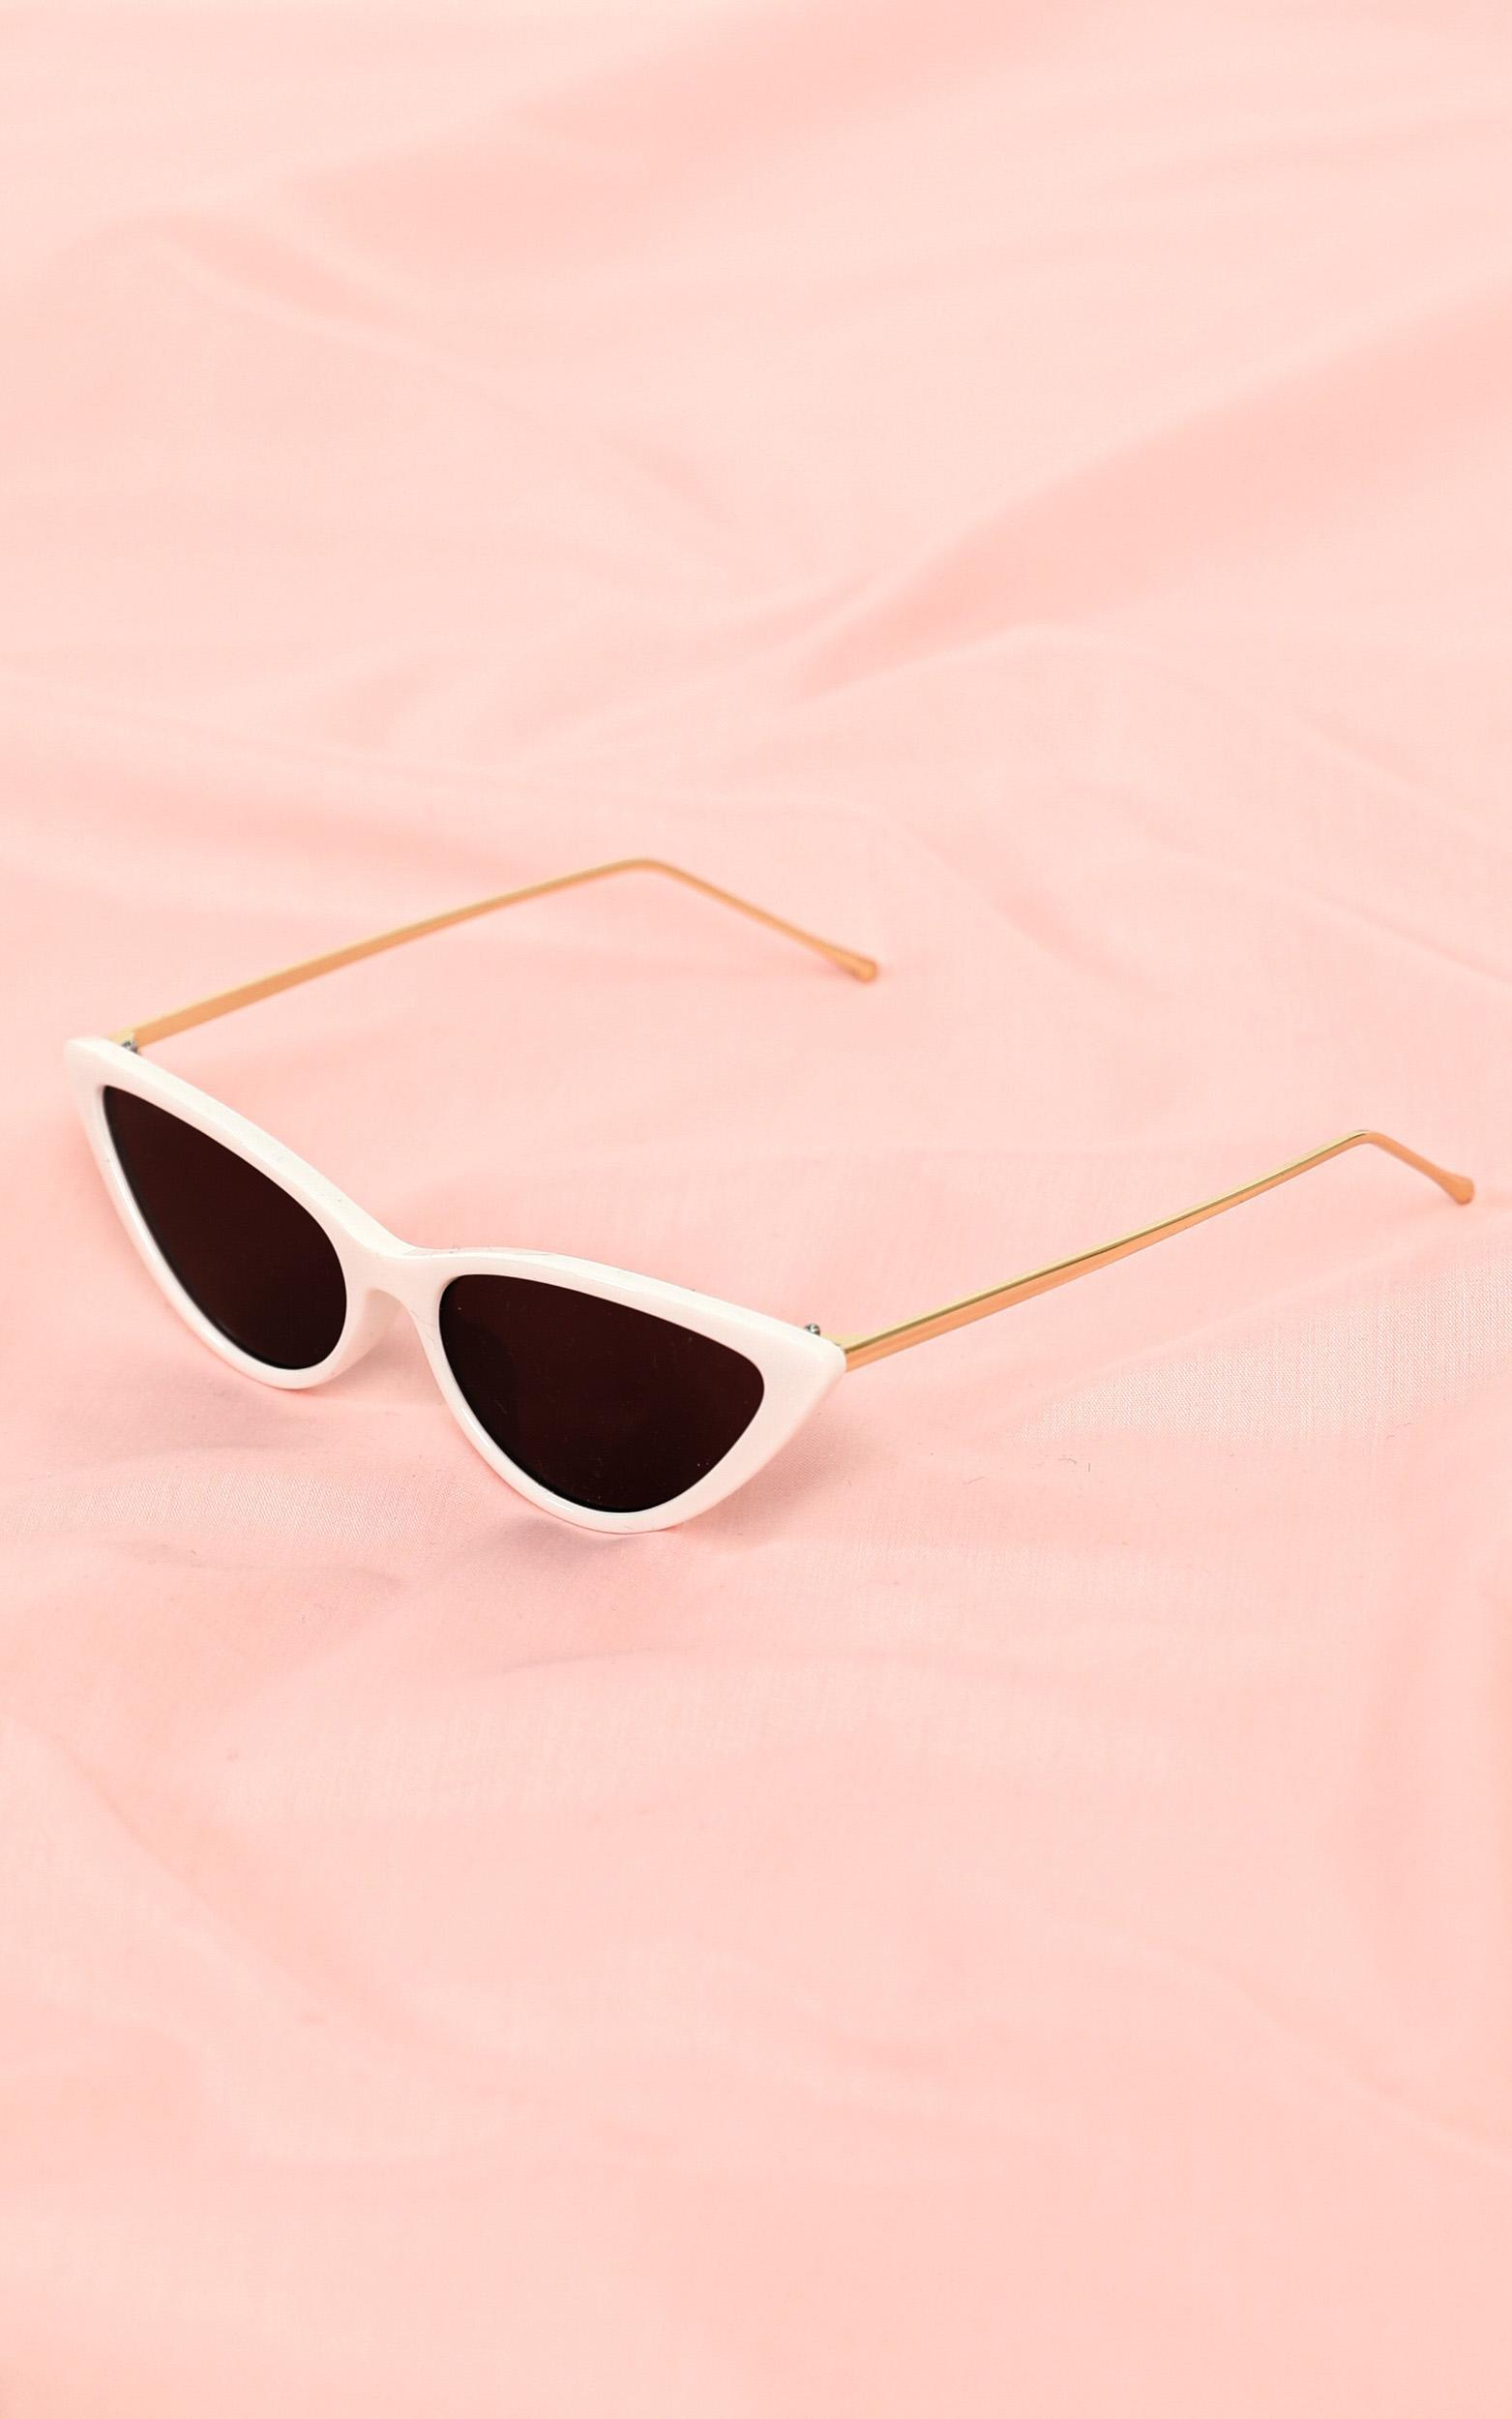 Lost At Sea Sunglasses In White And Gold, , hi-res image number null